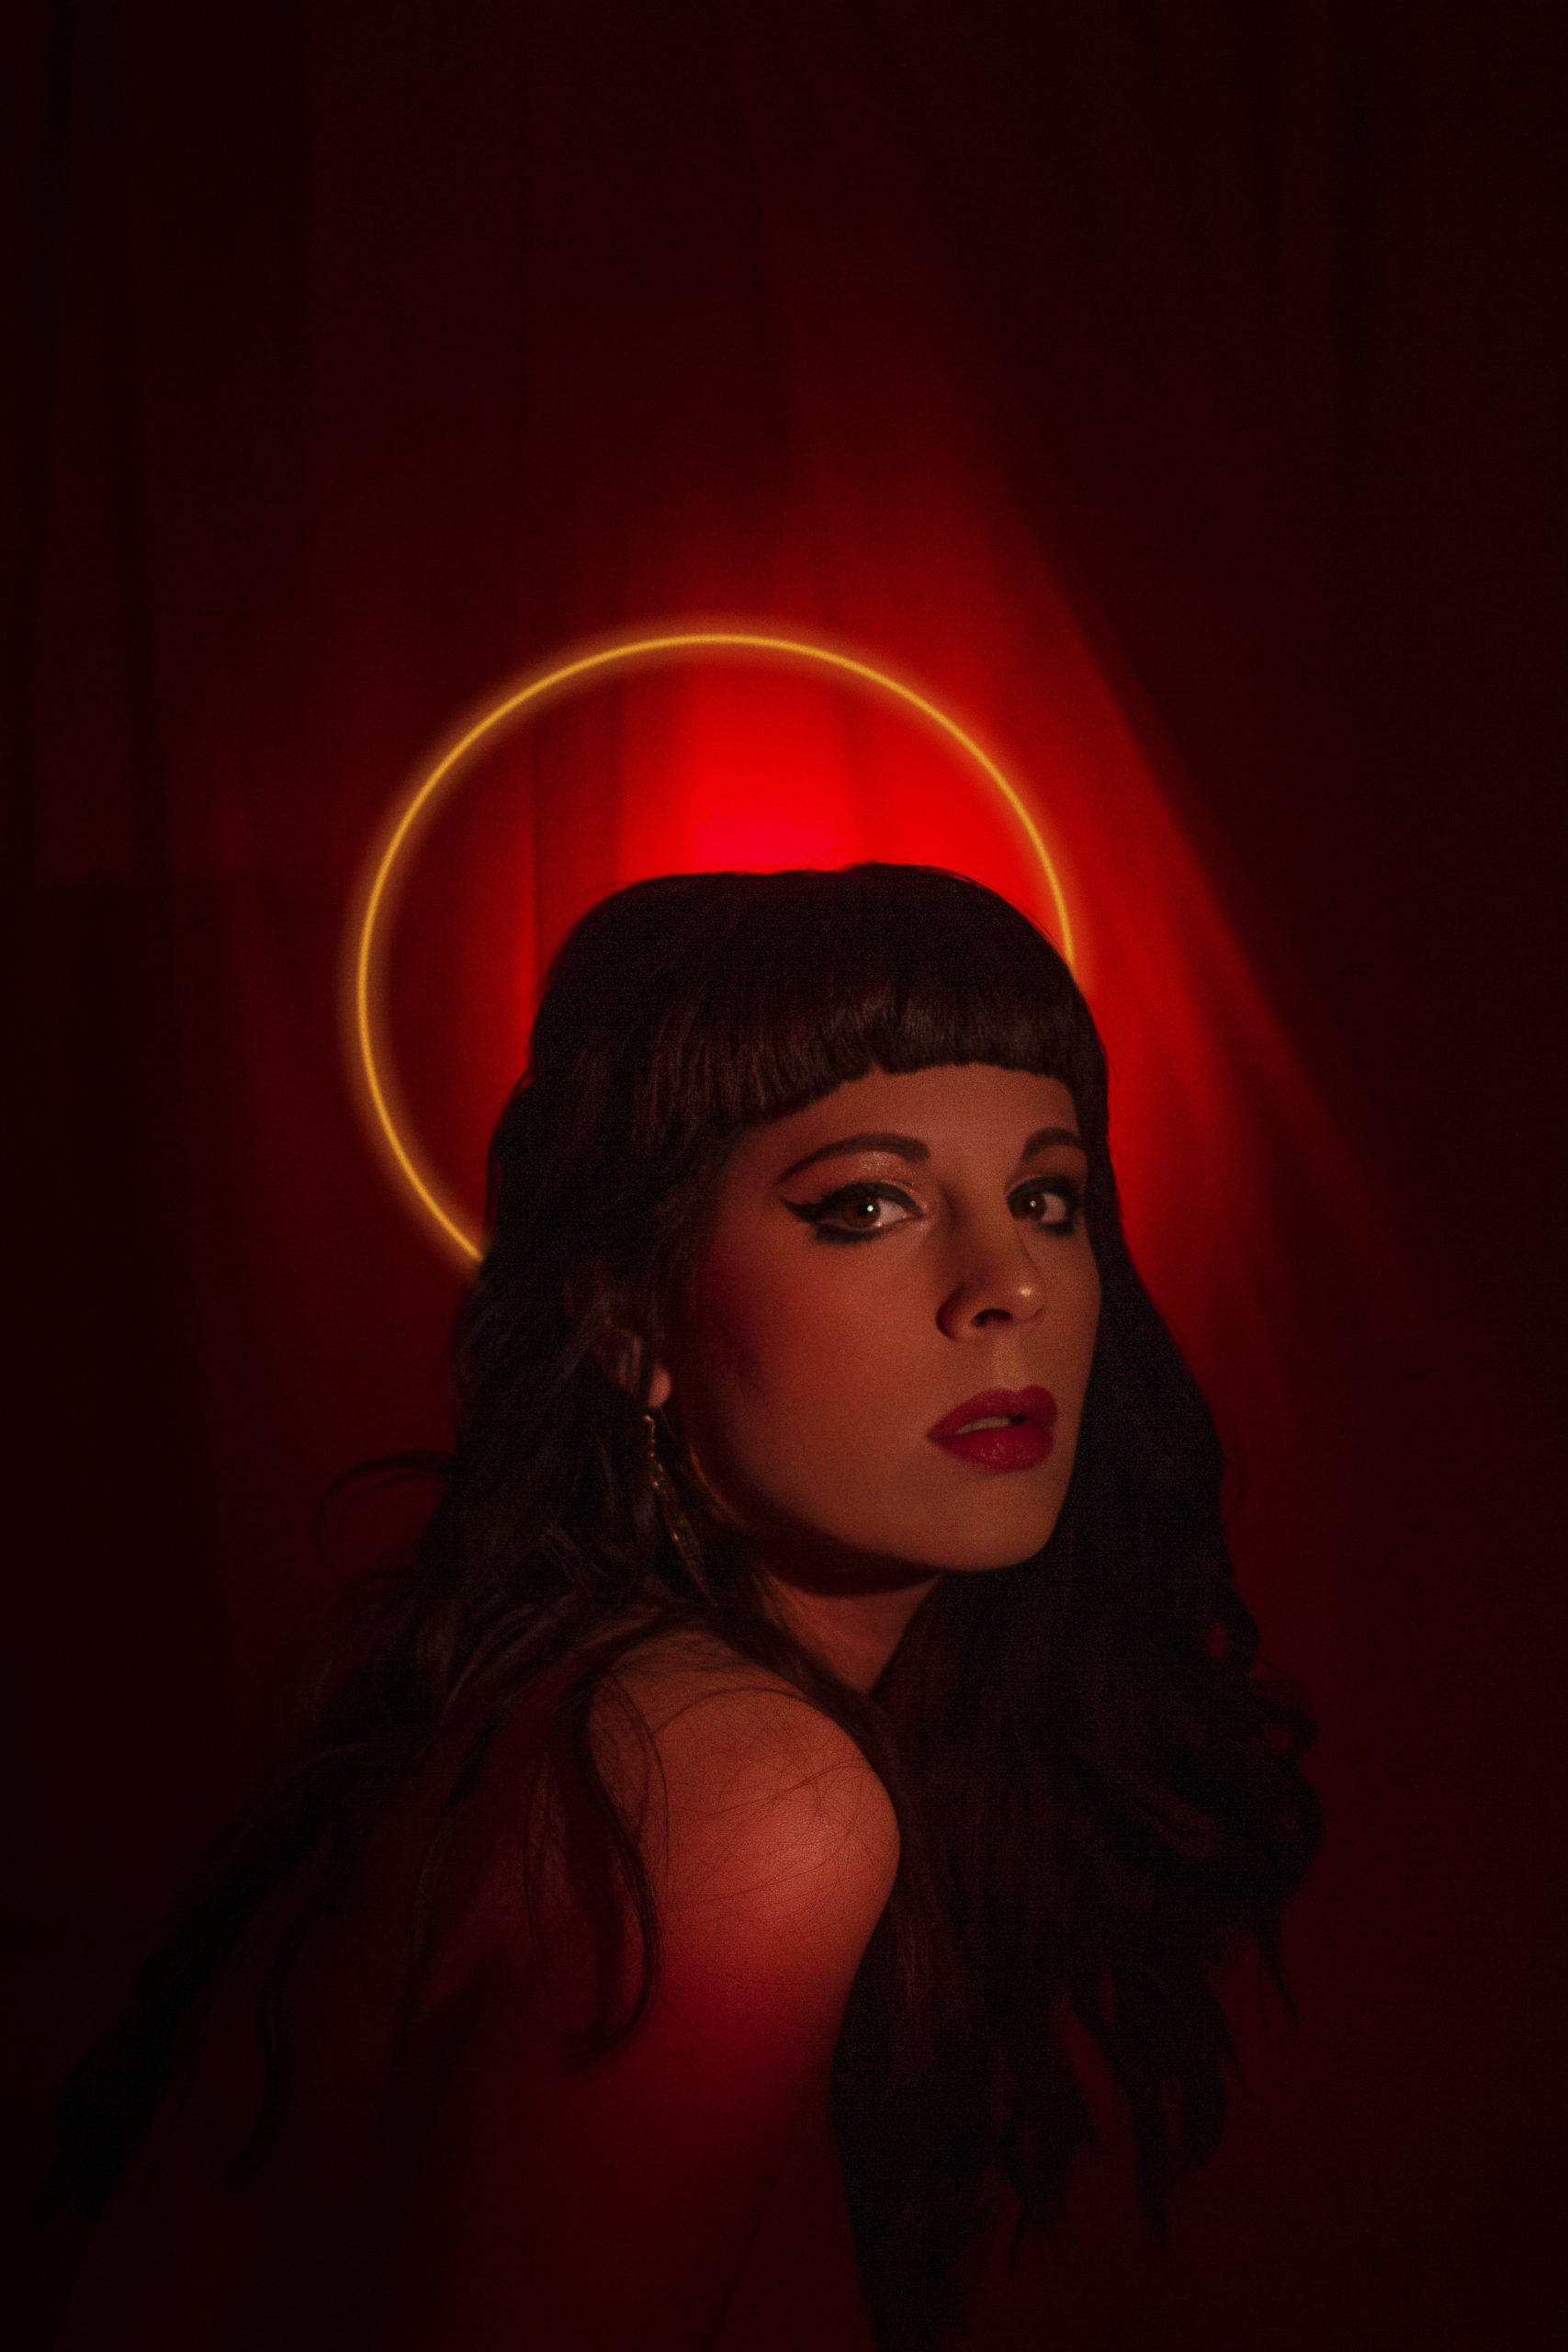 NEWS: Ana De Llor reveals video for debut single 'Lilith' a powerful feminist hymn